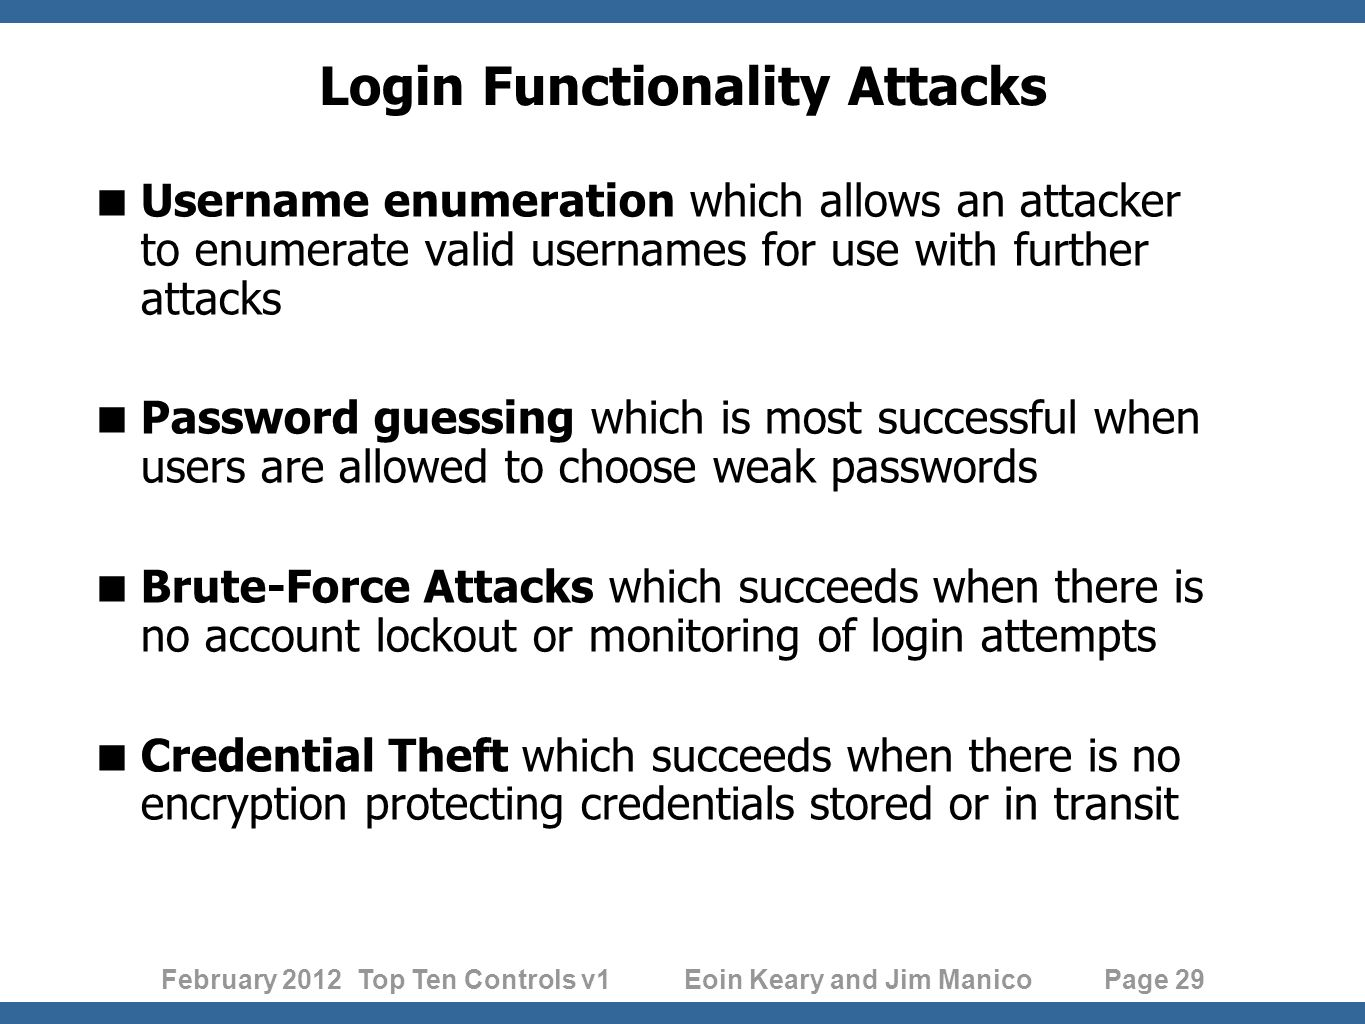 February 2012 Top Ten Controls v1 Eoin Keary and Jim Manico Page 29 Login Functionality Attacks Username enumeration which allows an attacker to enumerate valid usernames for use with further attacks Password guessing which is most successful when users are allowed to choose weak passwords Brute-Force Attacks which succeeds when there is no account lockout or monitoring of login attempts Credential Theft which succeeds when there is no encryption protecting credentials stored or in transit